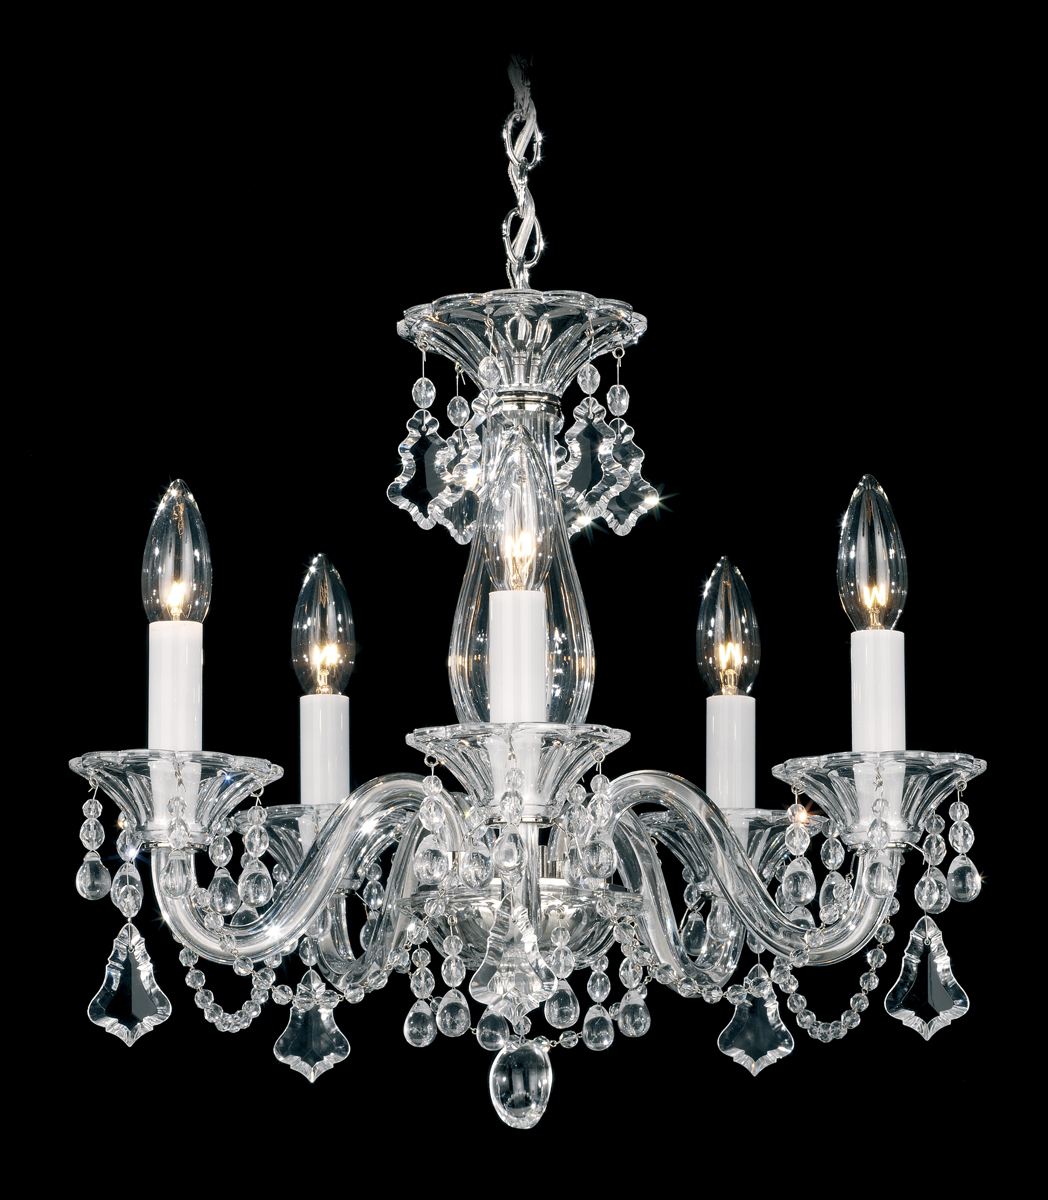 Mini Chandelier String Lights : Schonbek Lighting (6985) Minuet 5 Light Chandelier shown in Silver Finish